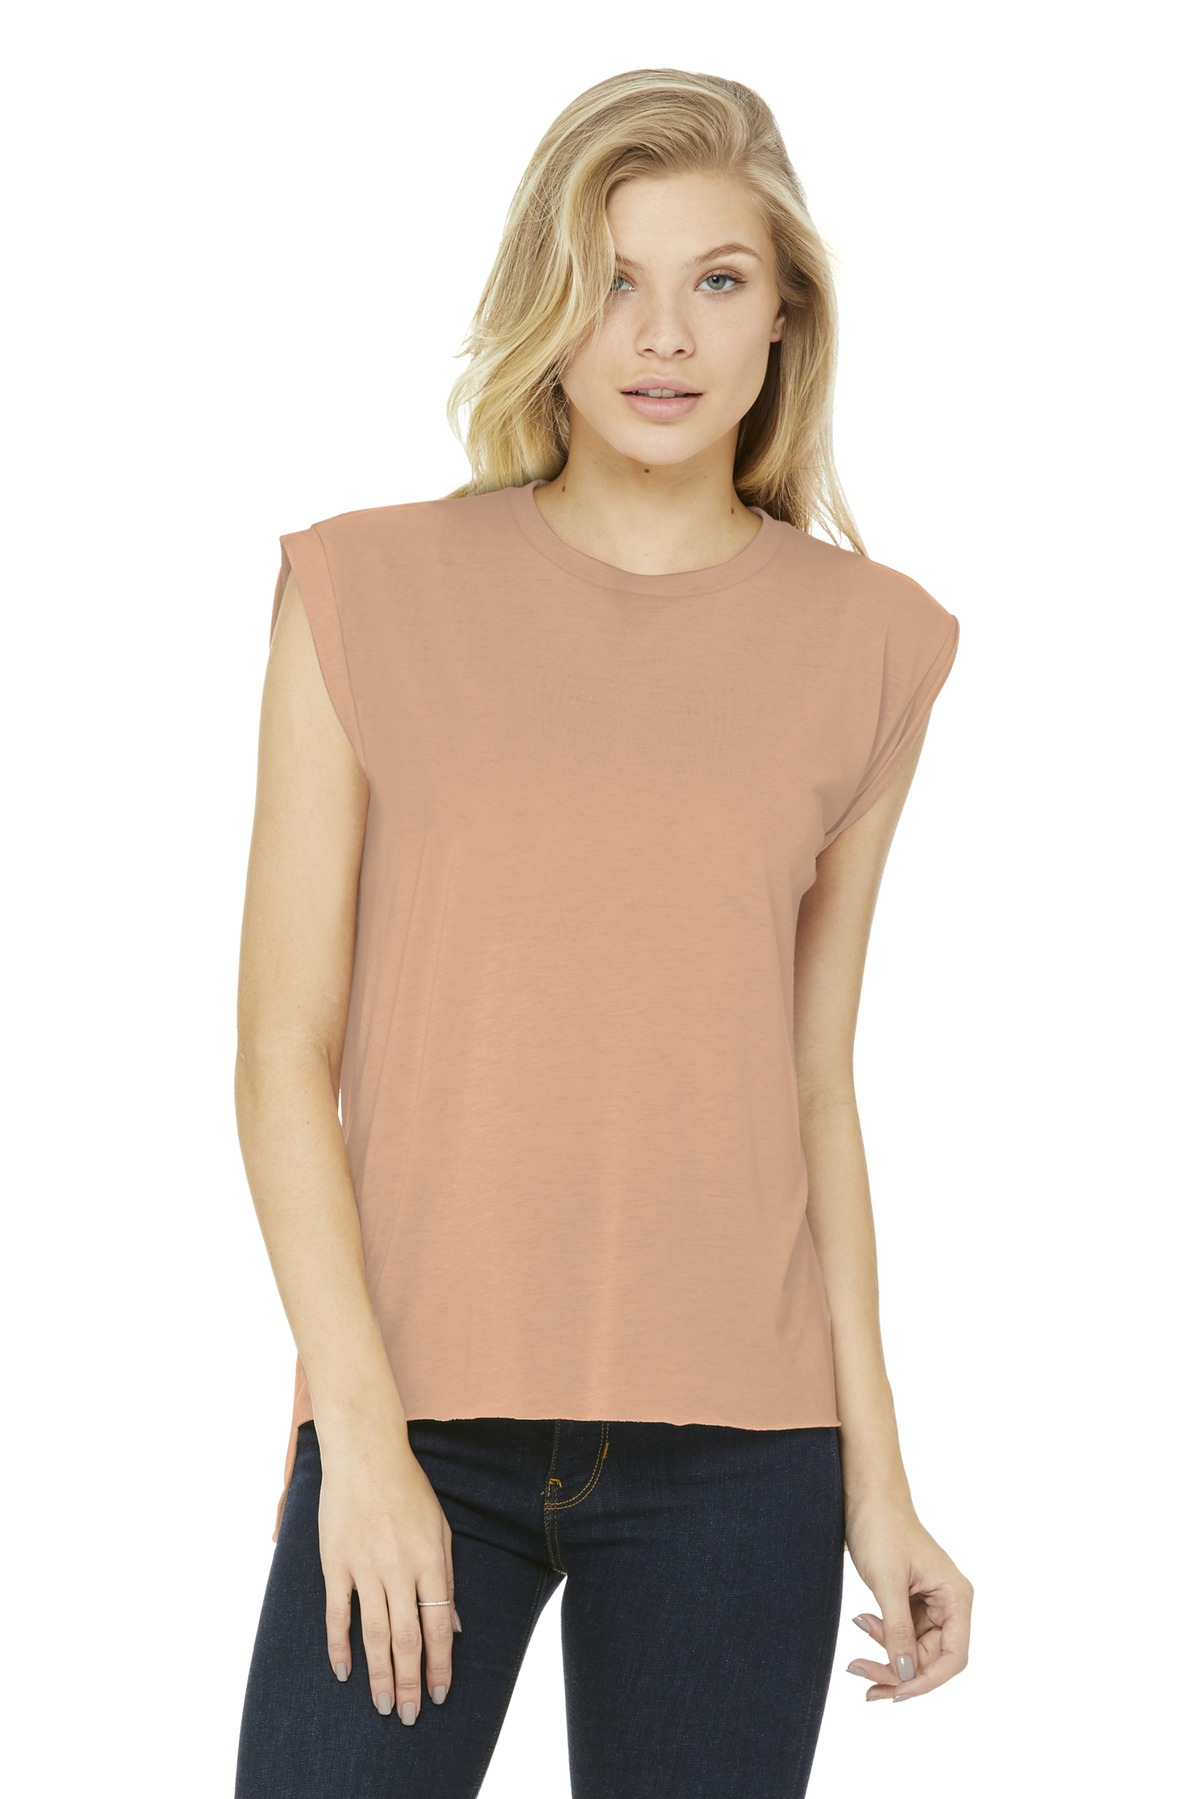 BELLA+CANVAS Women''s Flowy Muscle Tee With Rolled Cuffs. BC8804